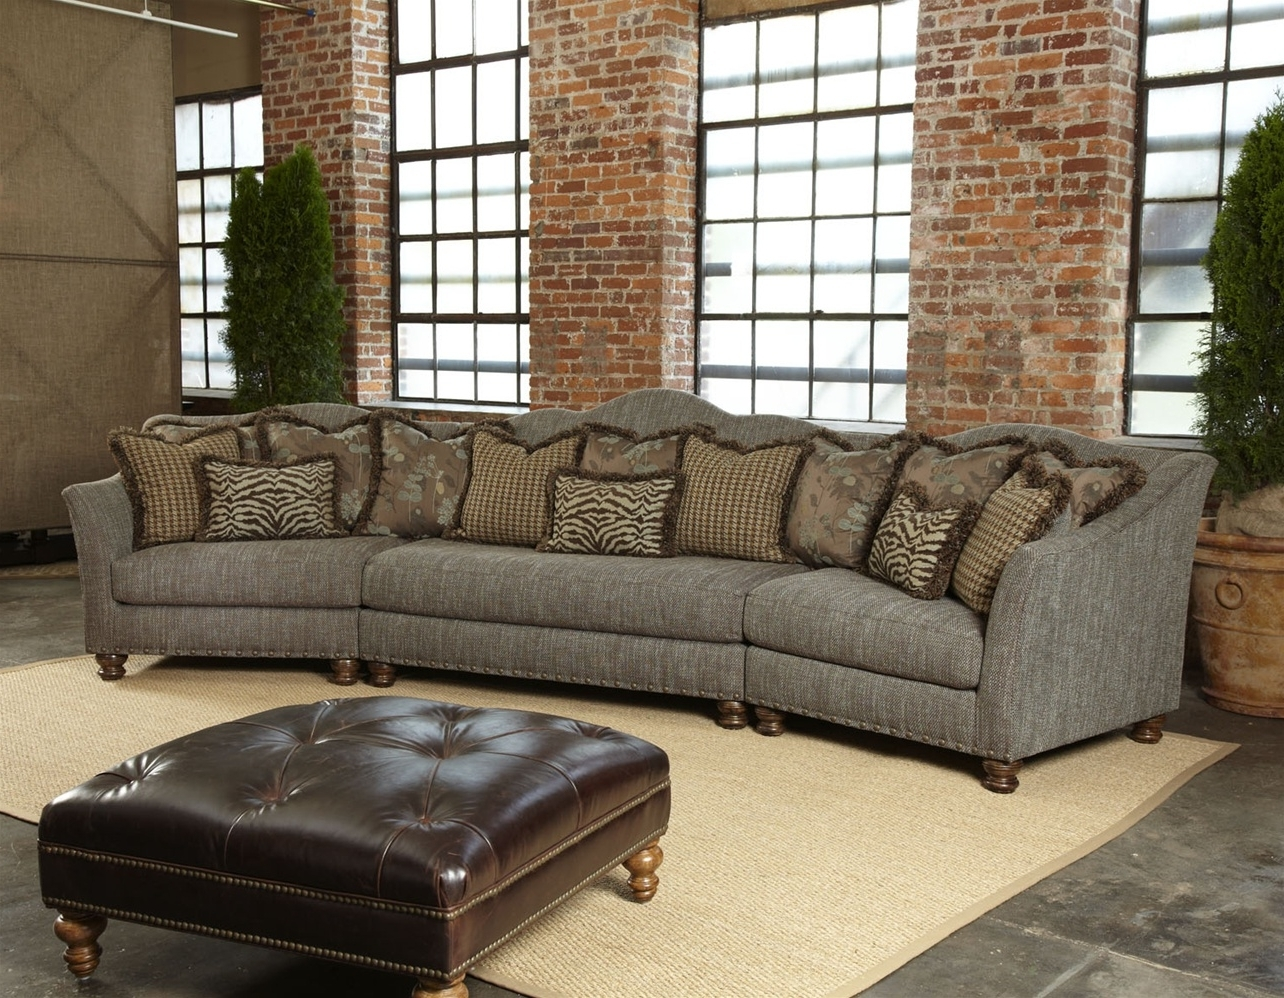 Good Quality Sectional Sofas – Cleanupflorida With Best And Newest Quality Sectional Sofas (View 5 of 20)